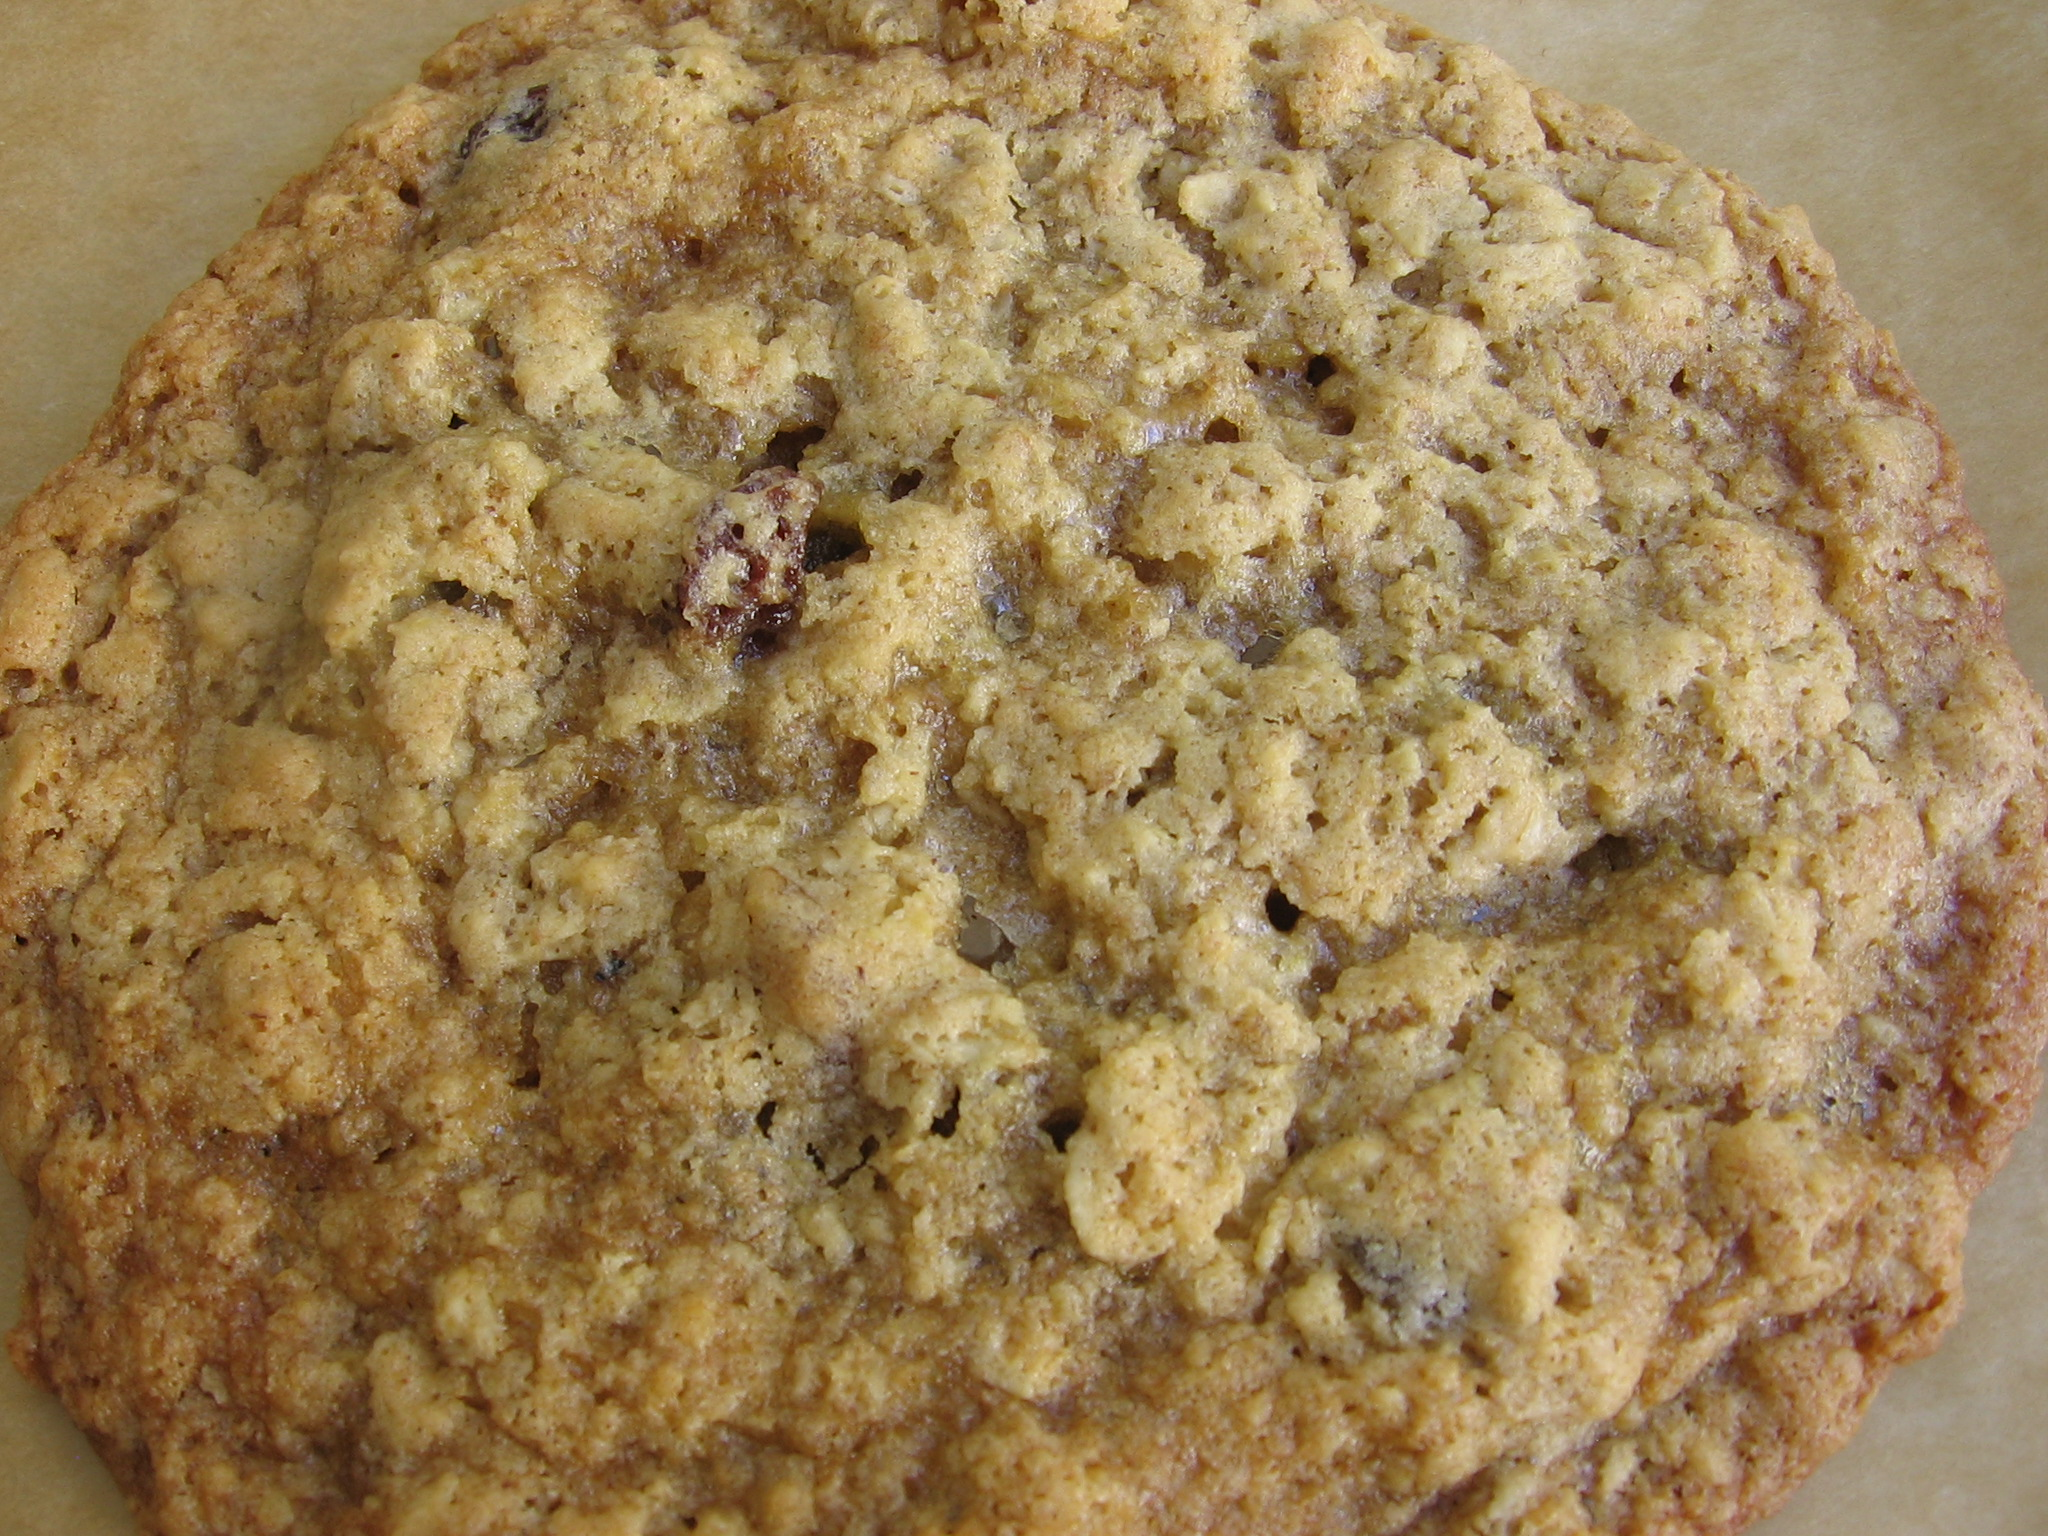 The Best Oatmeal Raisin Cookie Recipe I've Found Yet